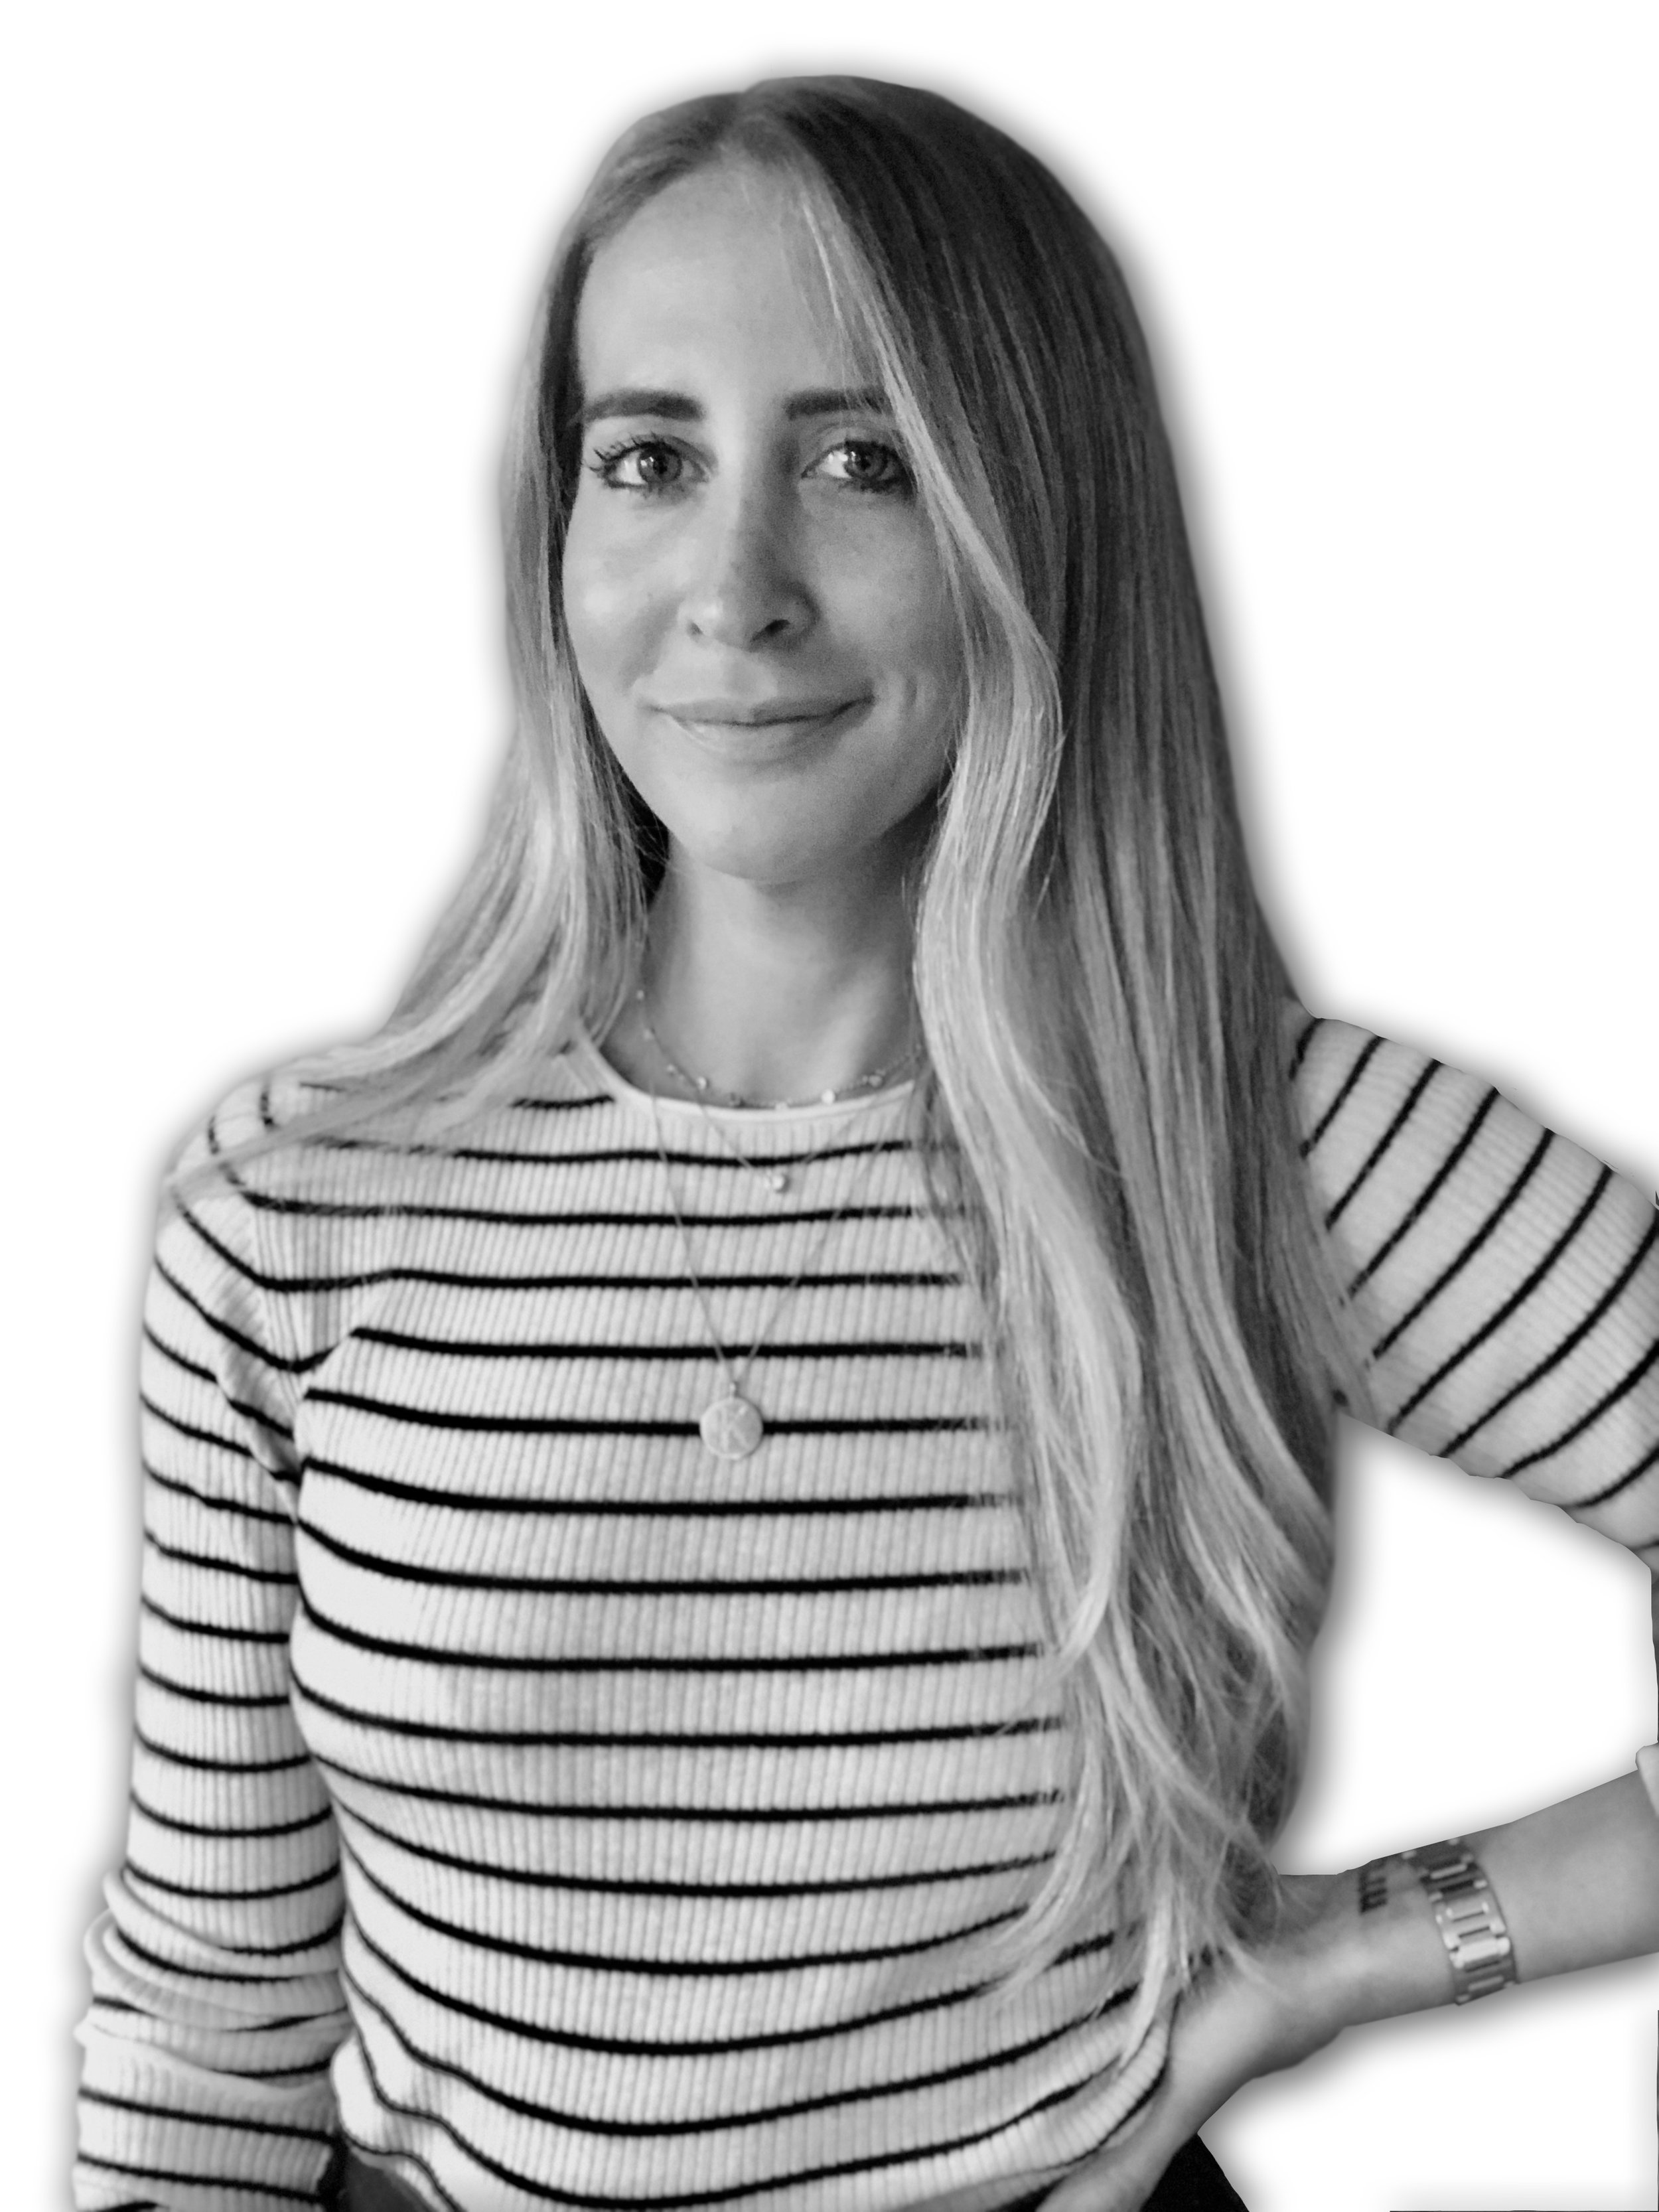 KATIE WITKIN, Co-Founder & COO